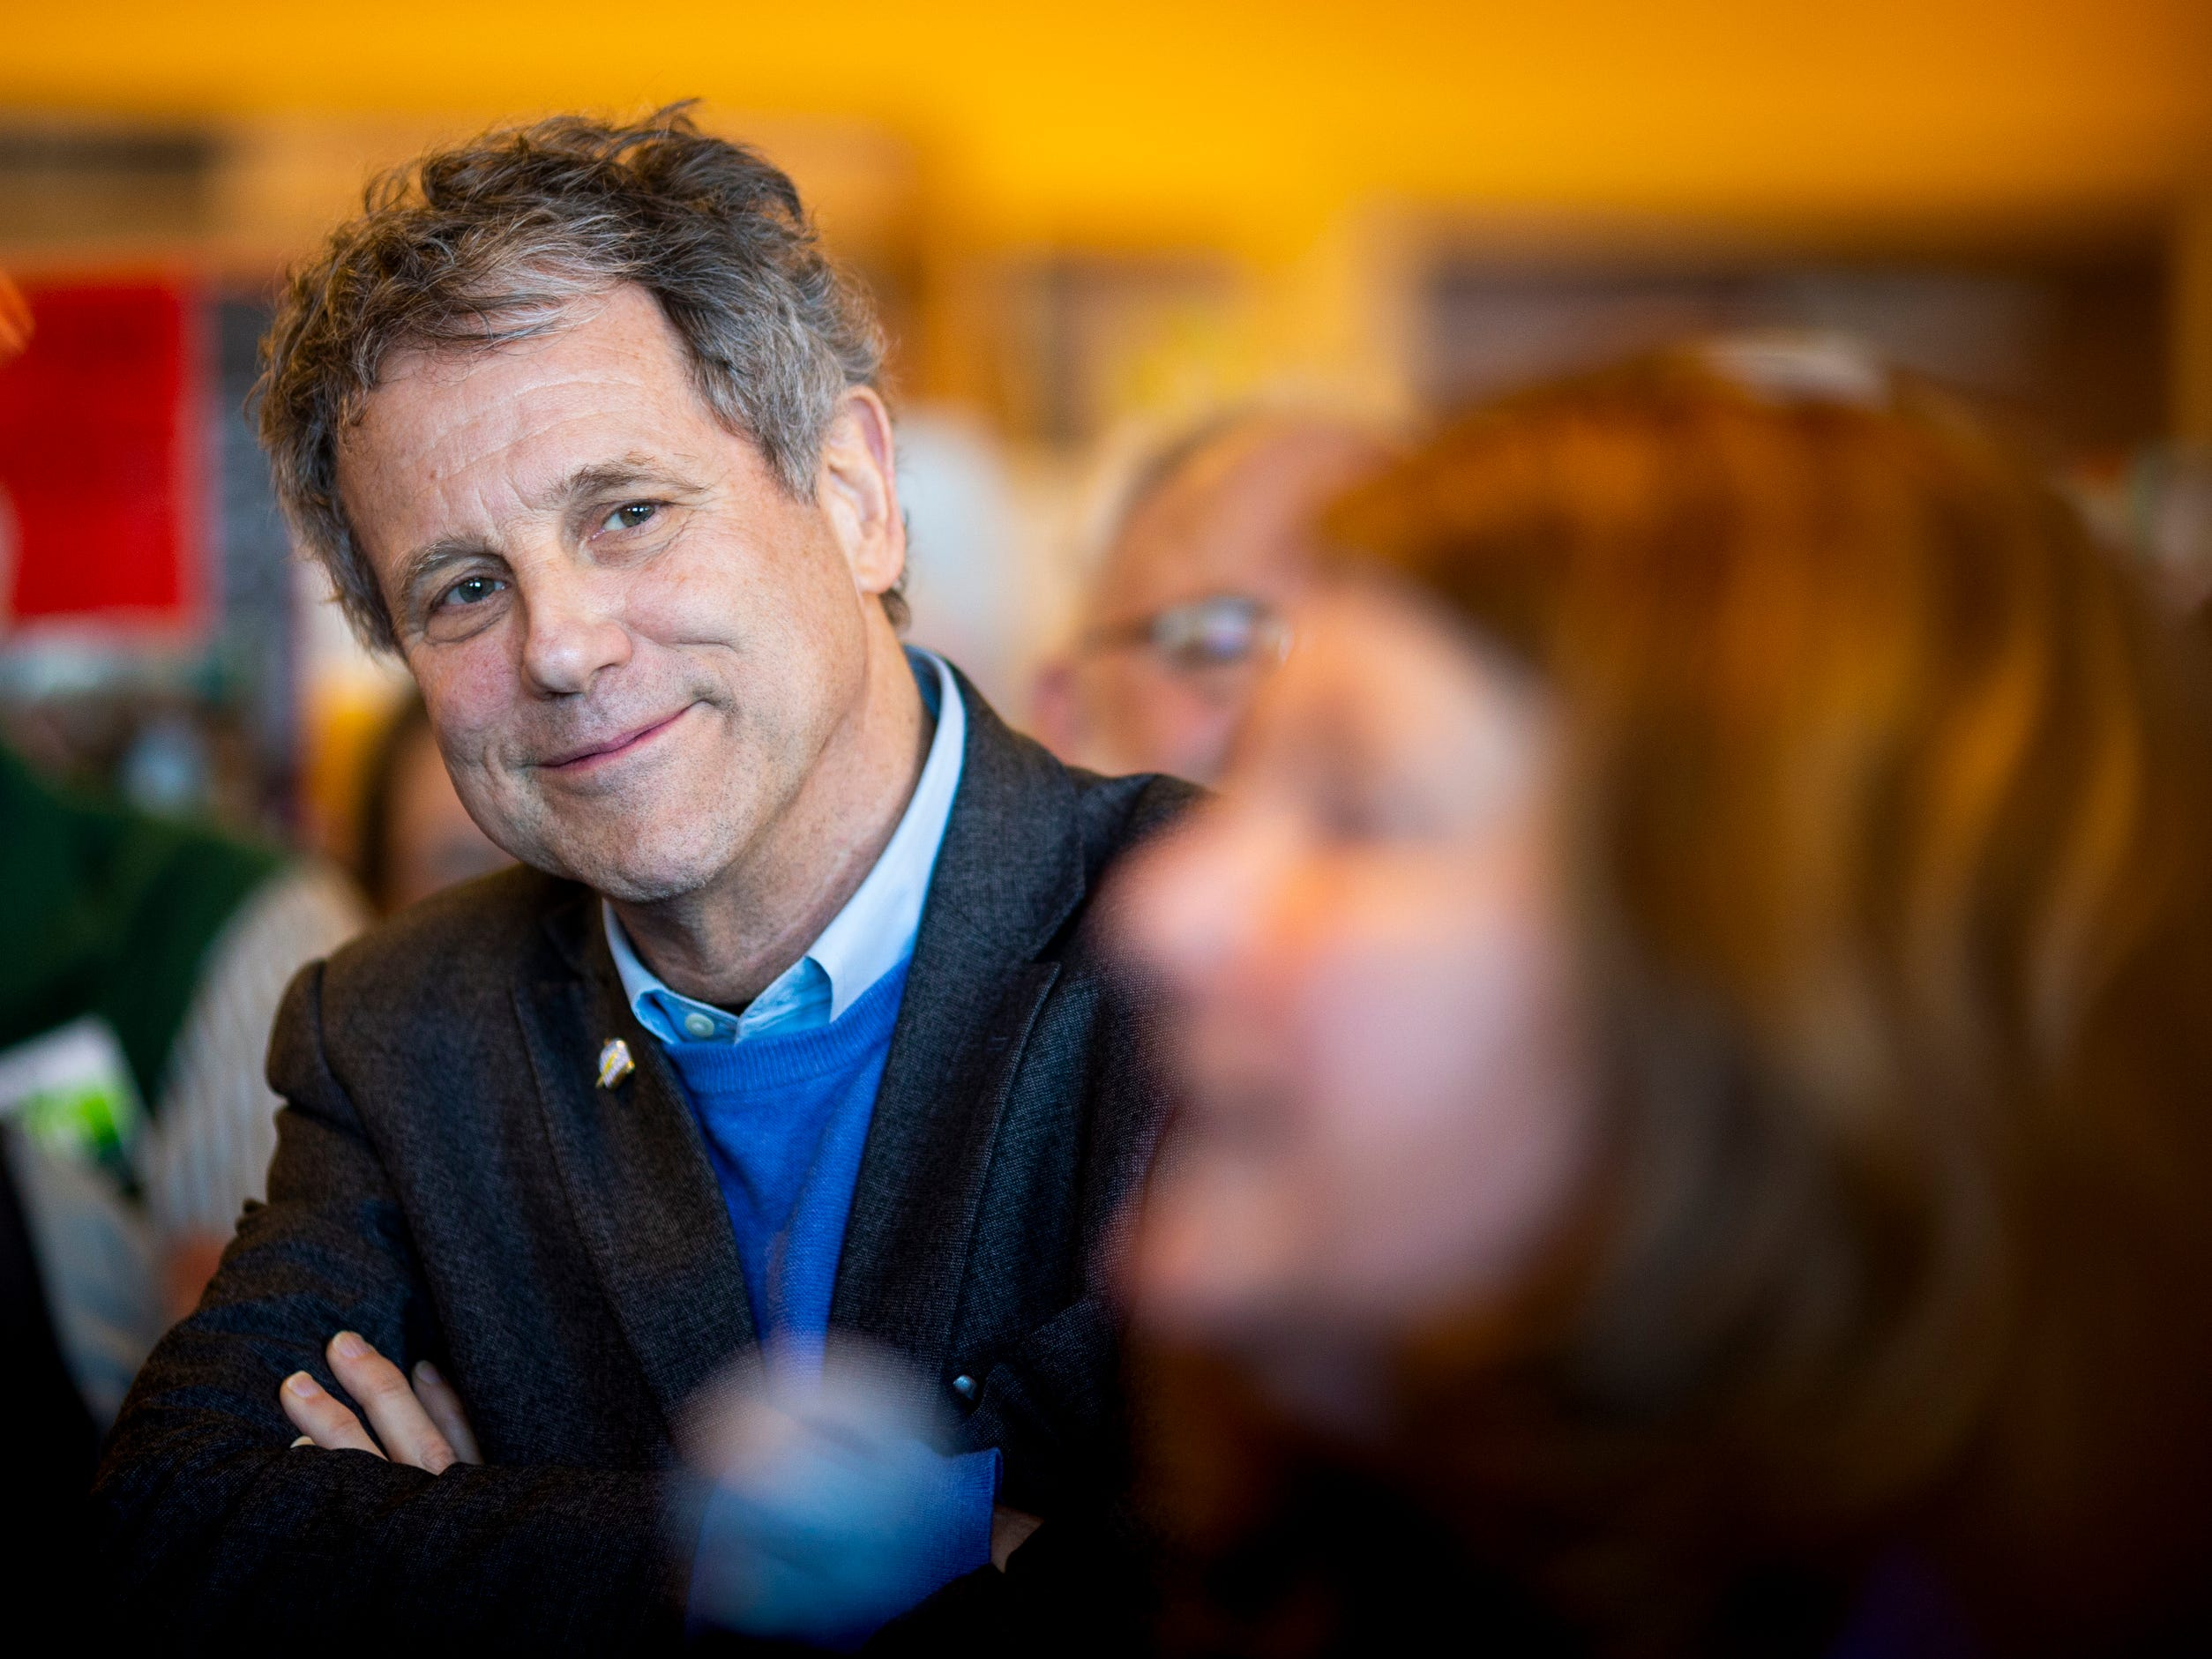 Senator Sherrod Brown listens to his wife Connie Schultz tell the story about how she checked his voting record before they went out on a first date to a large crowd during a meet and greet at Gibson's Bookstore in Concord, N.H. Saturday, February 9, 2019.